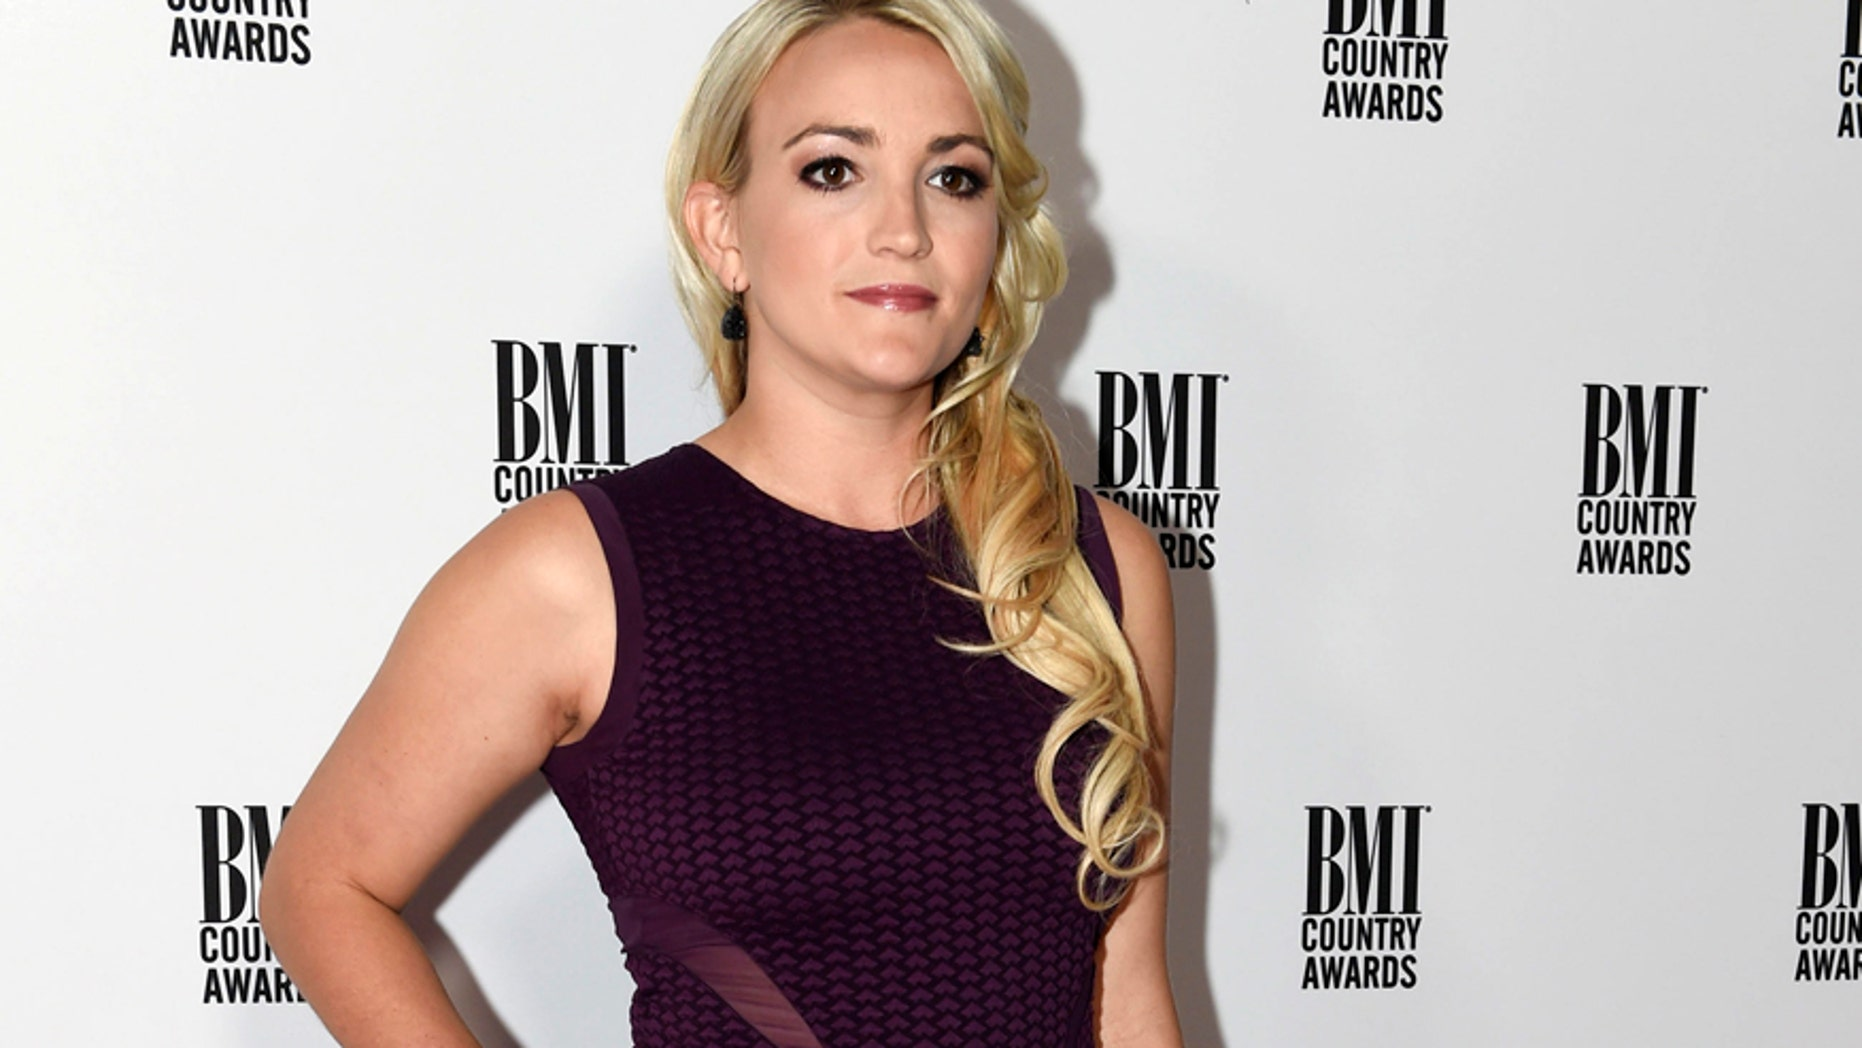 This Nov. 1, 2016 file photo shows Jamie Lynn Spears at 64th Annual BMI Country Awards in Nashville, Tenn.